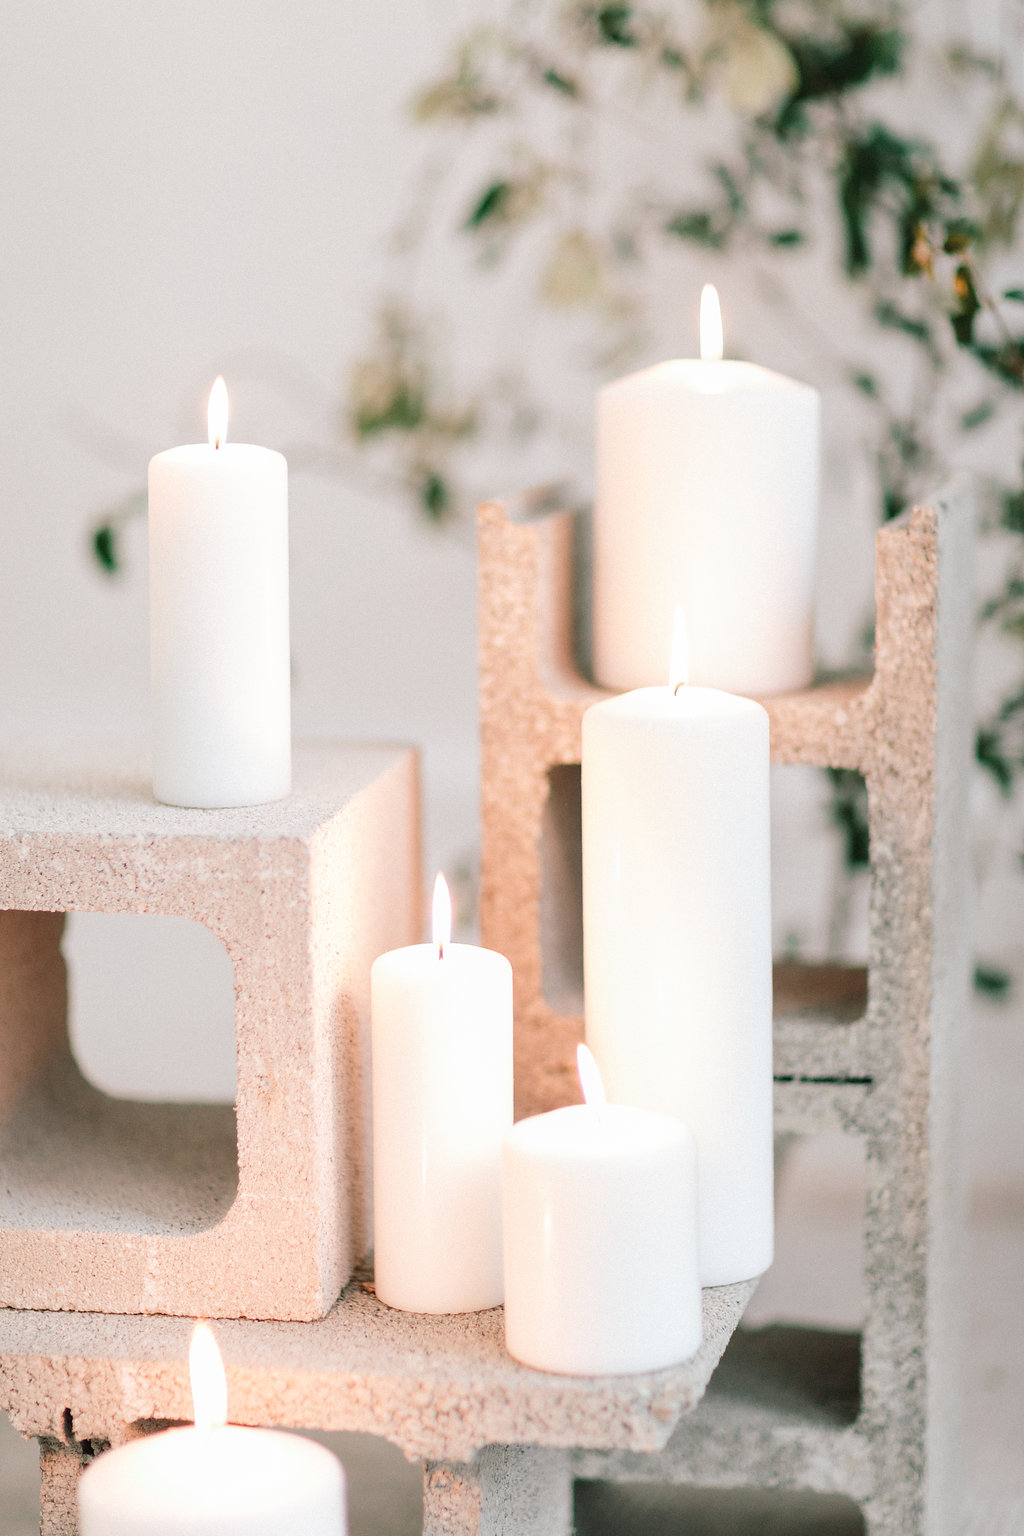 candlelit weddings - photo by Julien Bonjour Photographe http://ruffledblog.com/airy-industrial-wedding-inspiration-for-spring